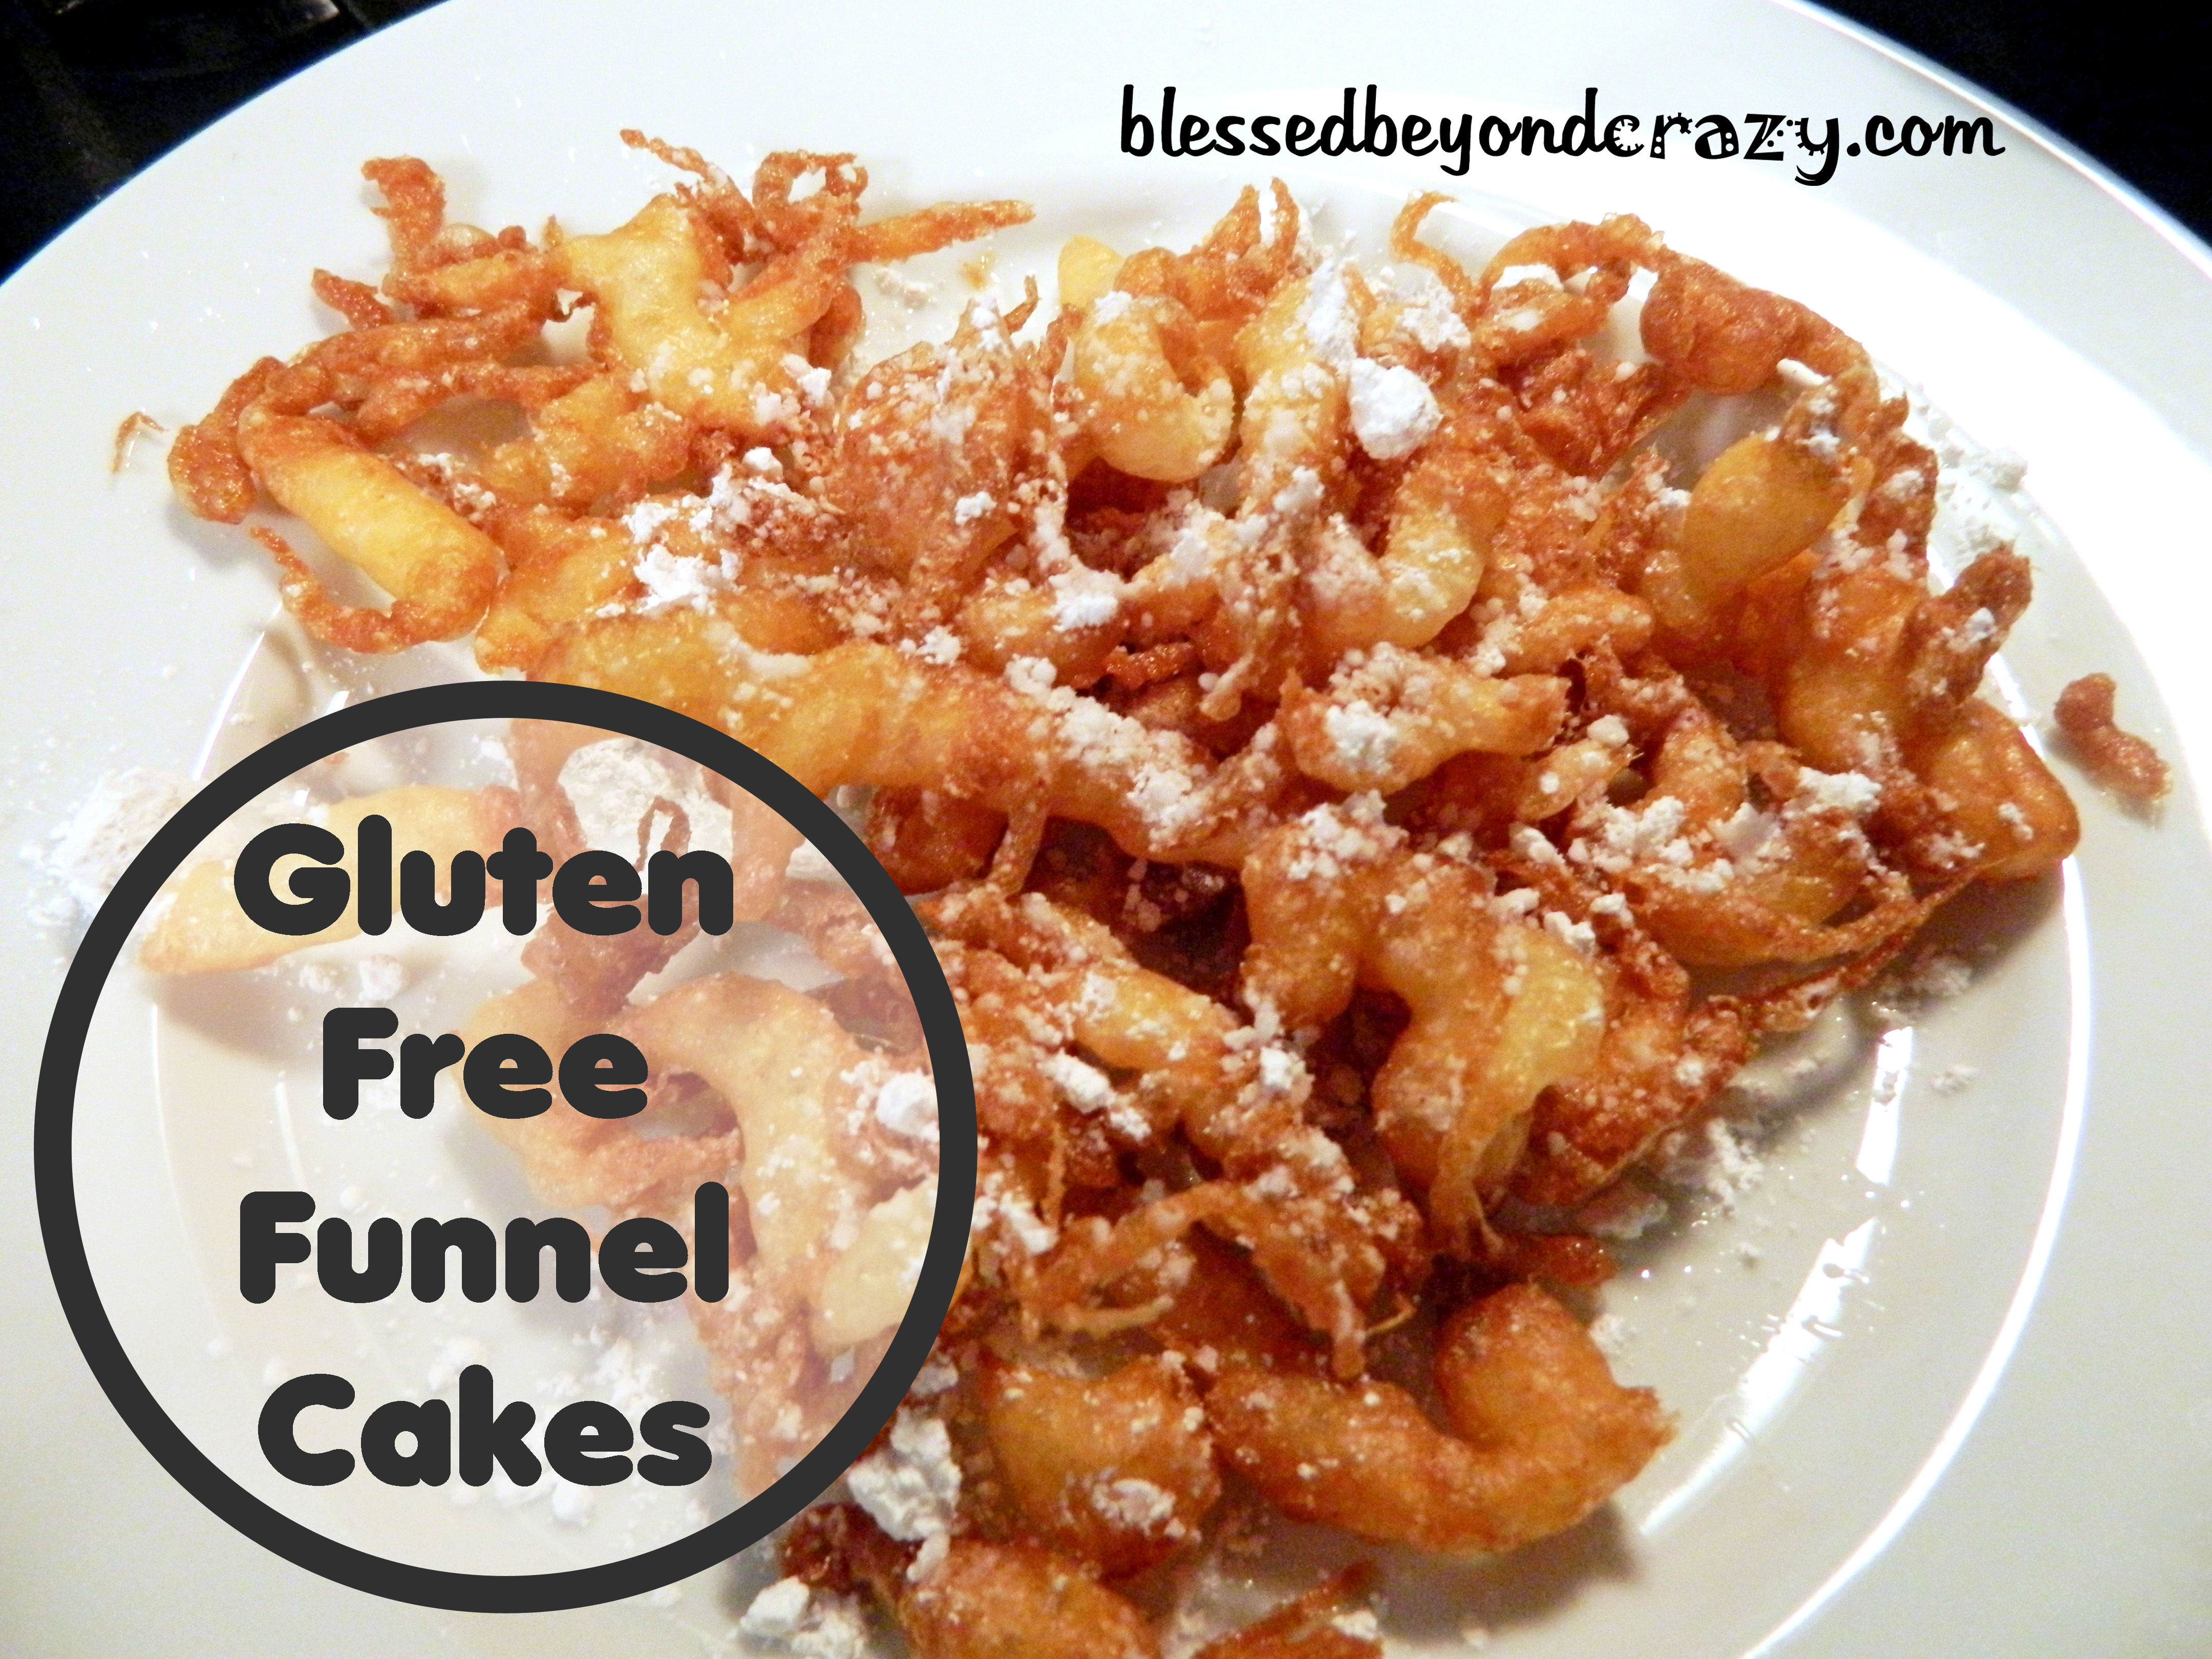 Gluten Free Funnel Cakes - Blessed Beyond Crazy